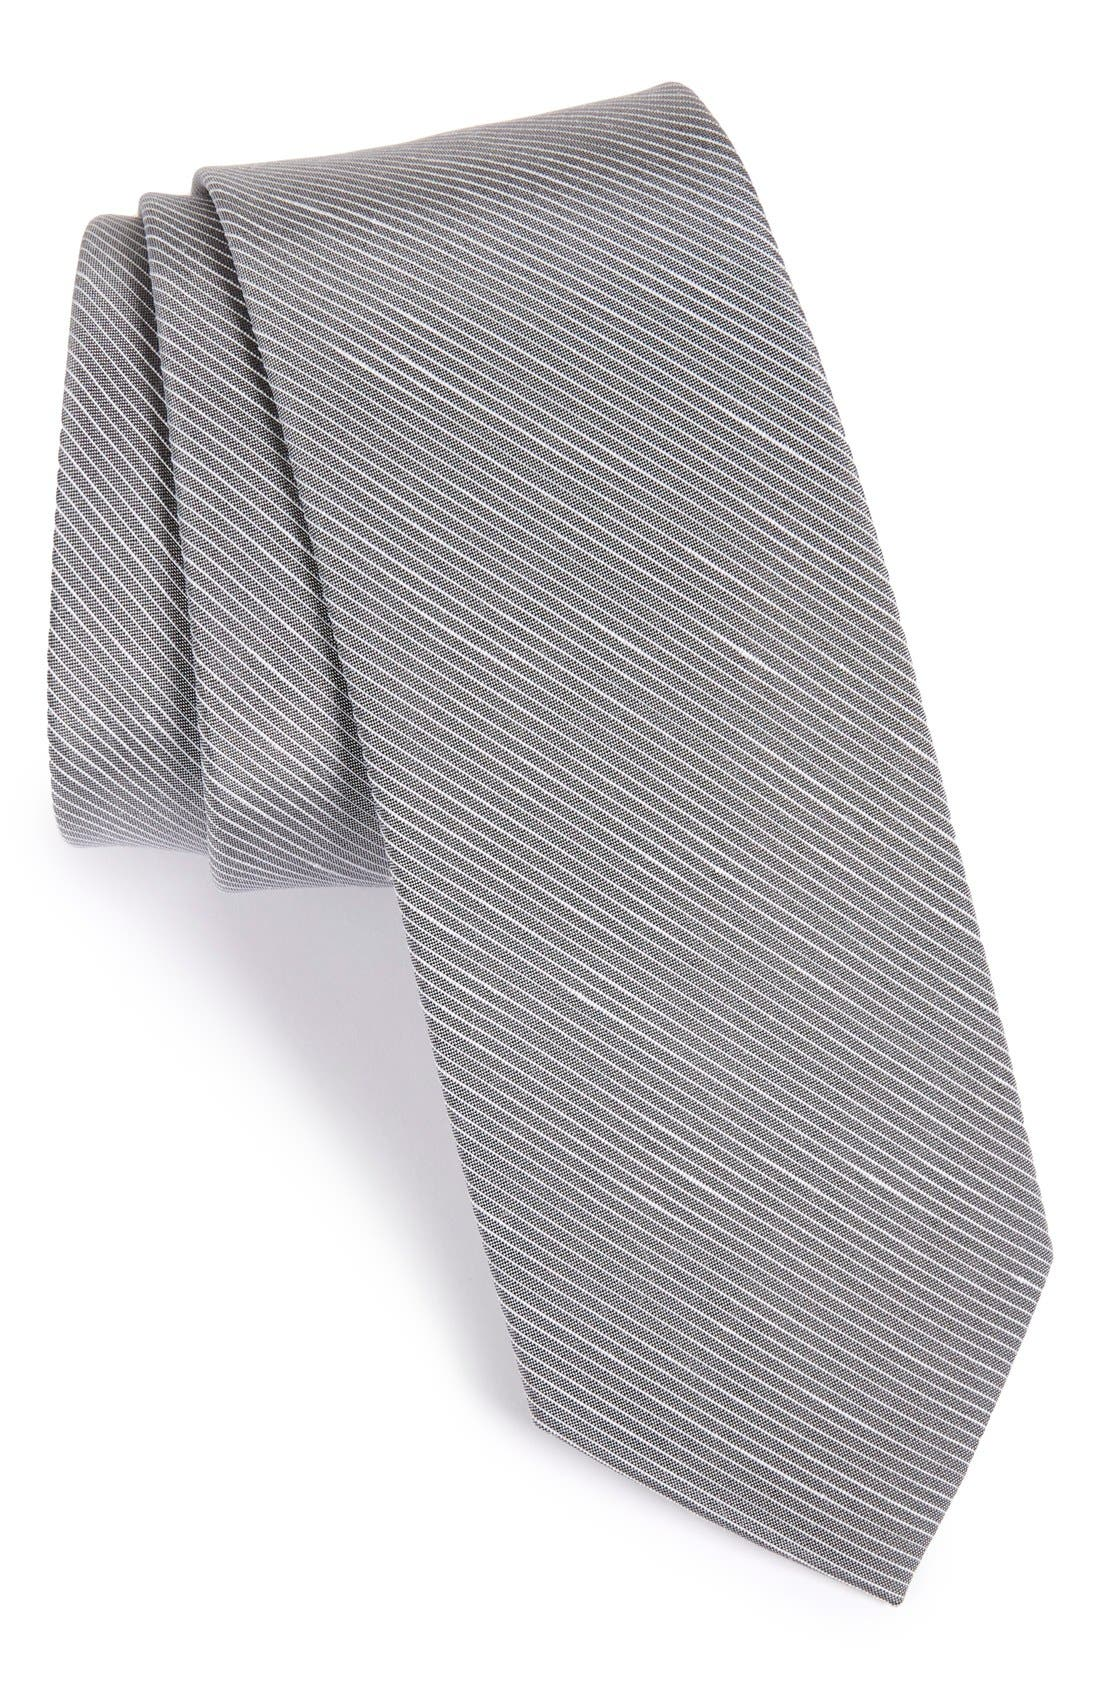 Pinstripe Silk & Linen Tie,                             Main thumbnail 1, color,                             040